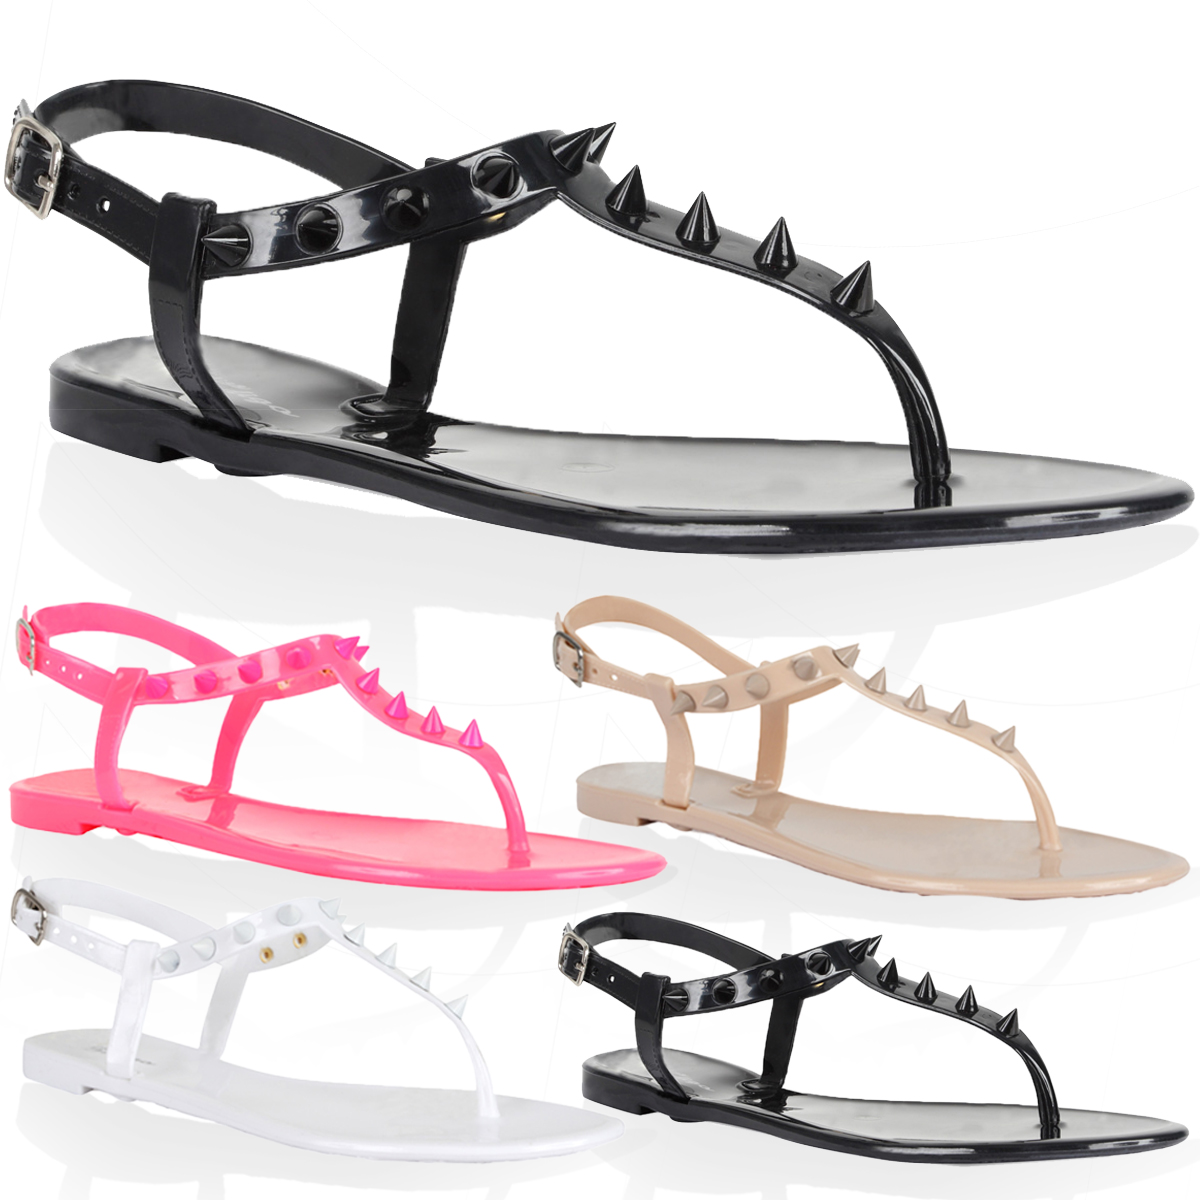 Womens sandals size 13 - New Womens Spiked Ladies Flat Studded T Bar Beach Jelly Sandals Shoes Size 3 8